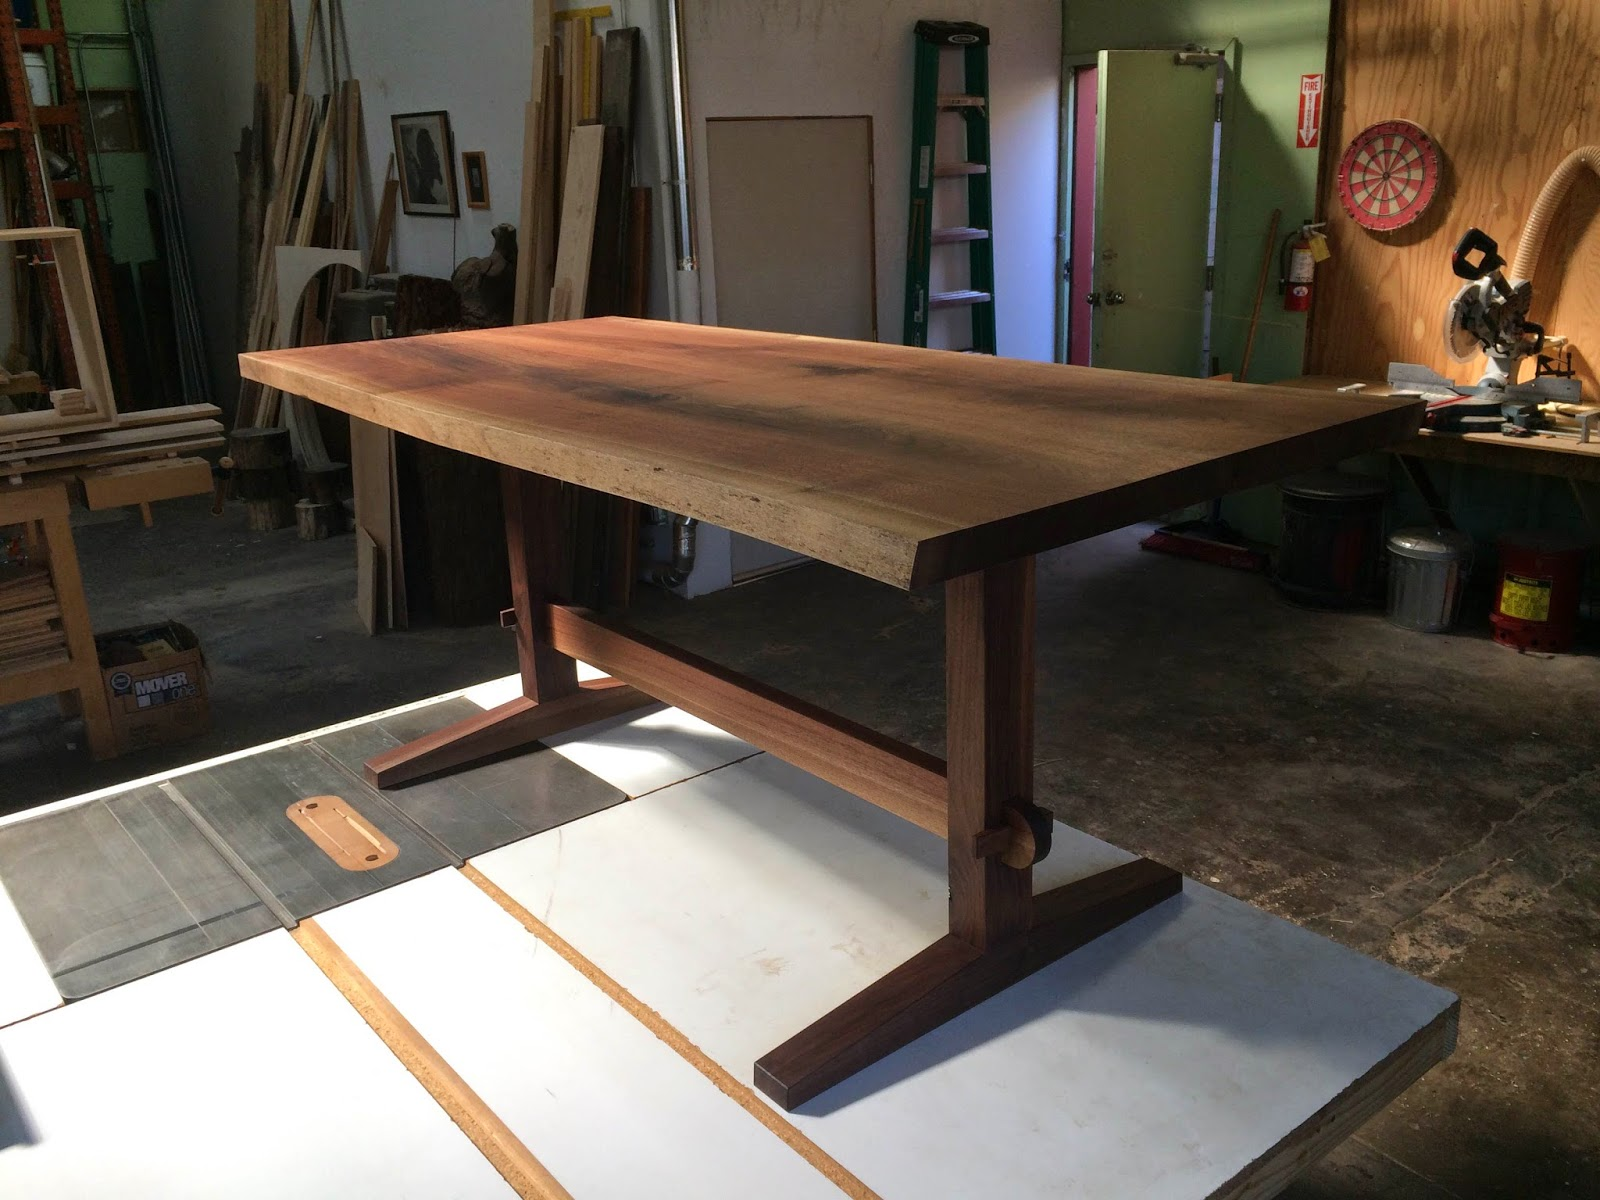 WALNUT TRESTLE TABLE WITH LIVE EDGE